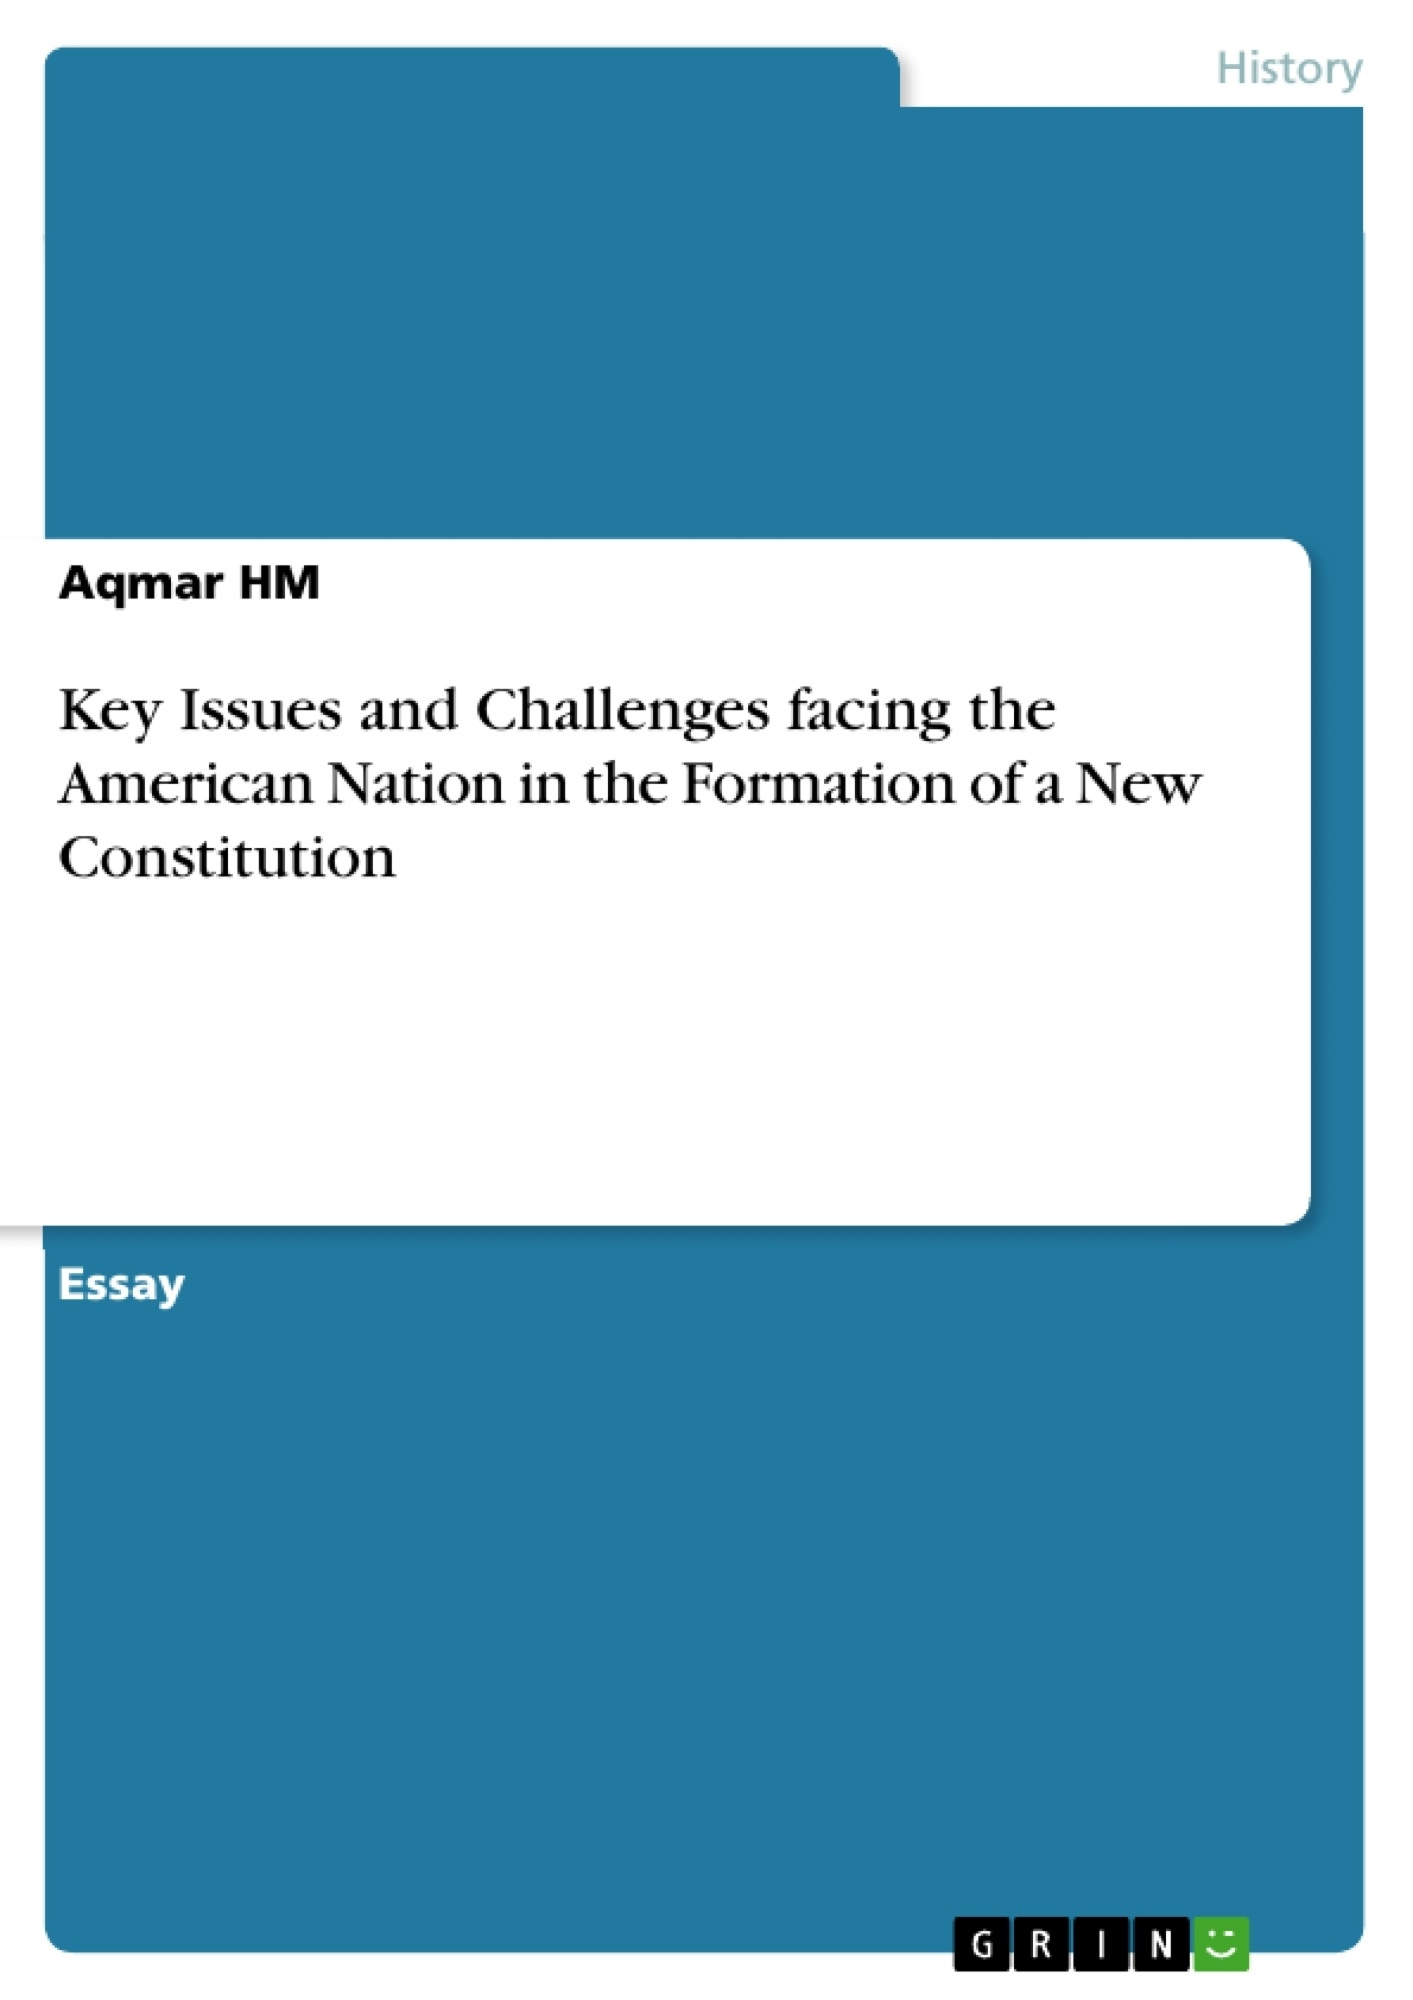 Title: Key Issues and Challenges facing the American Nation in the Formation of a New Constitution